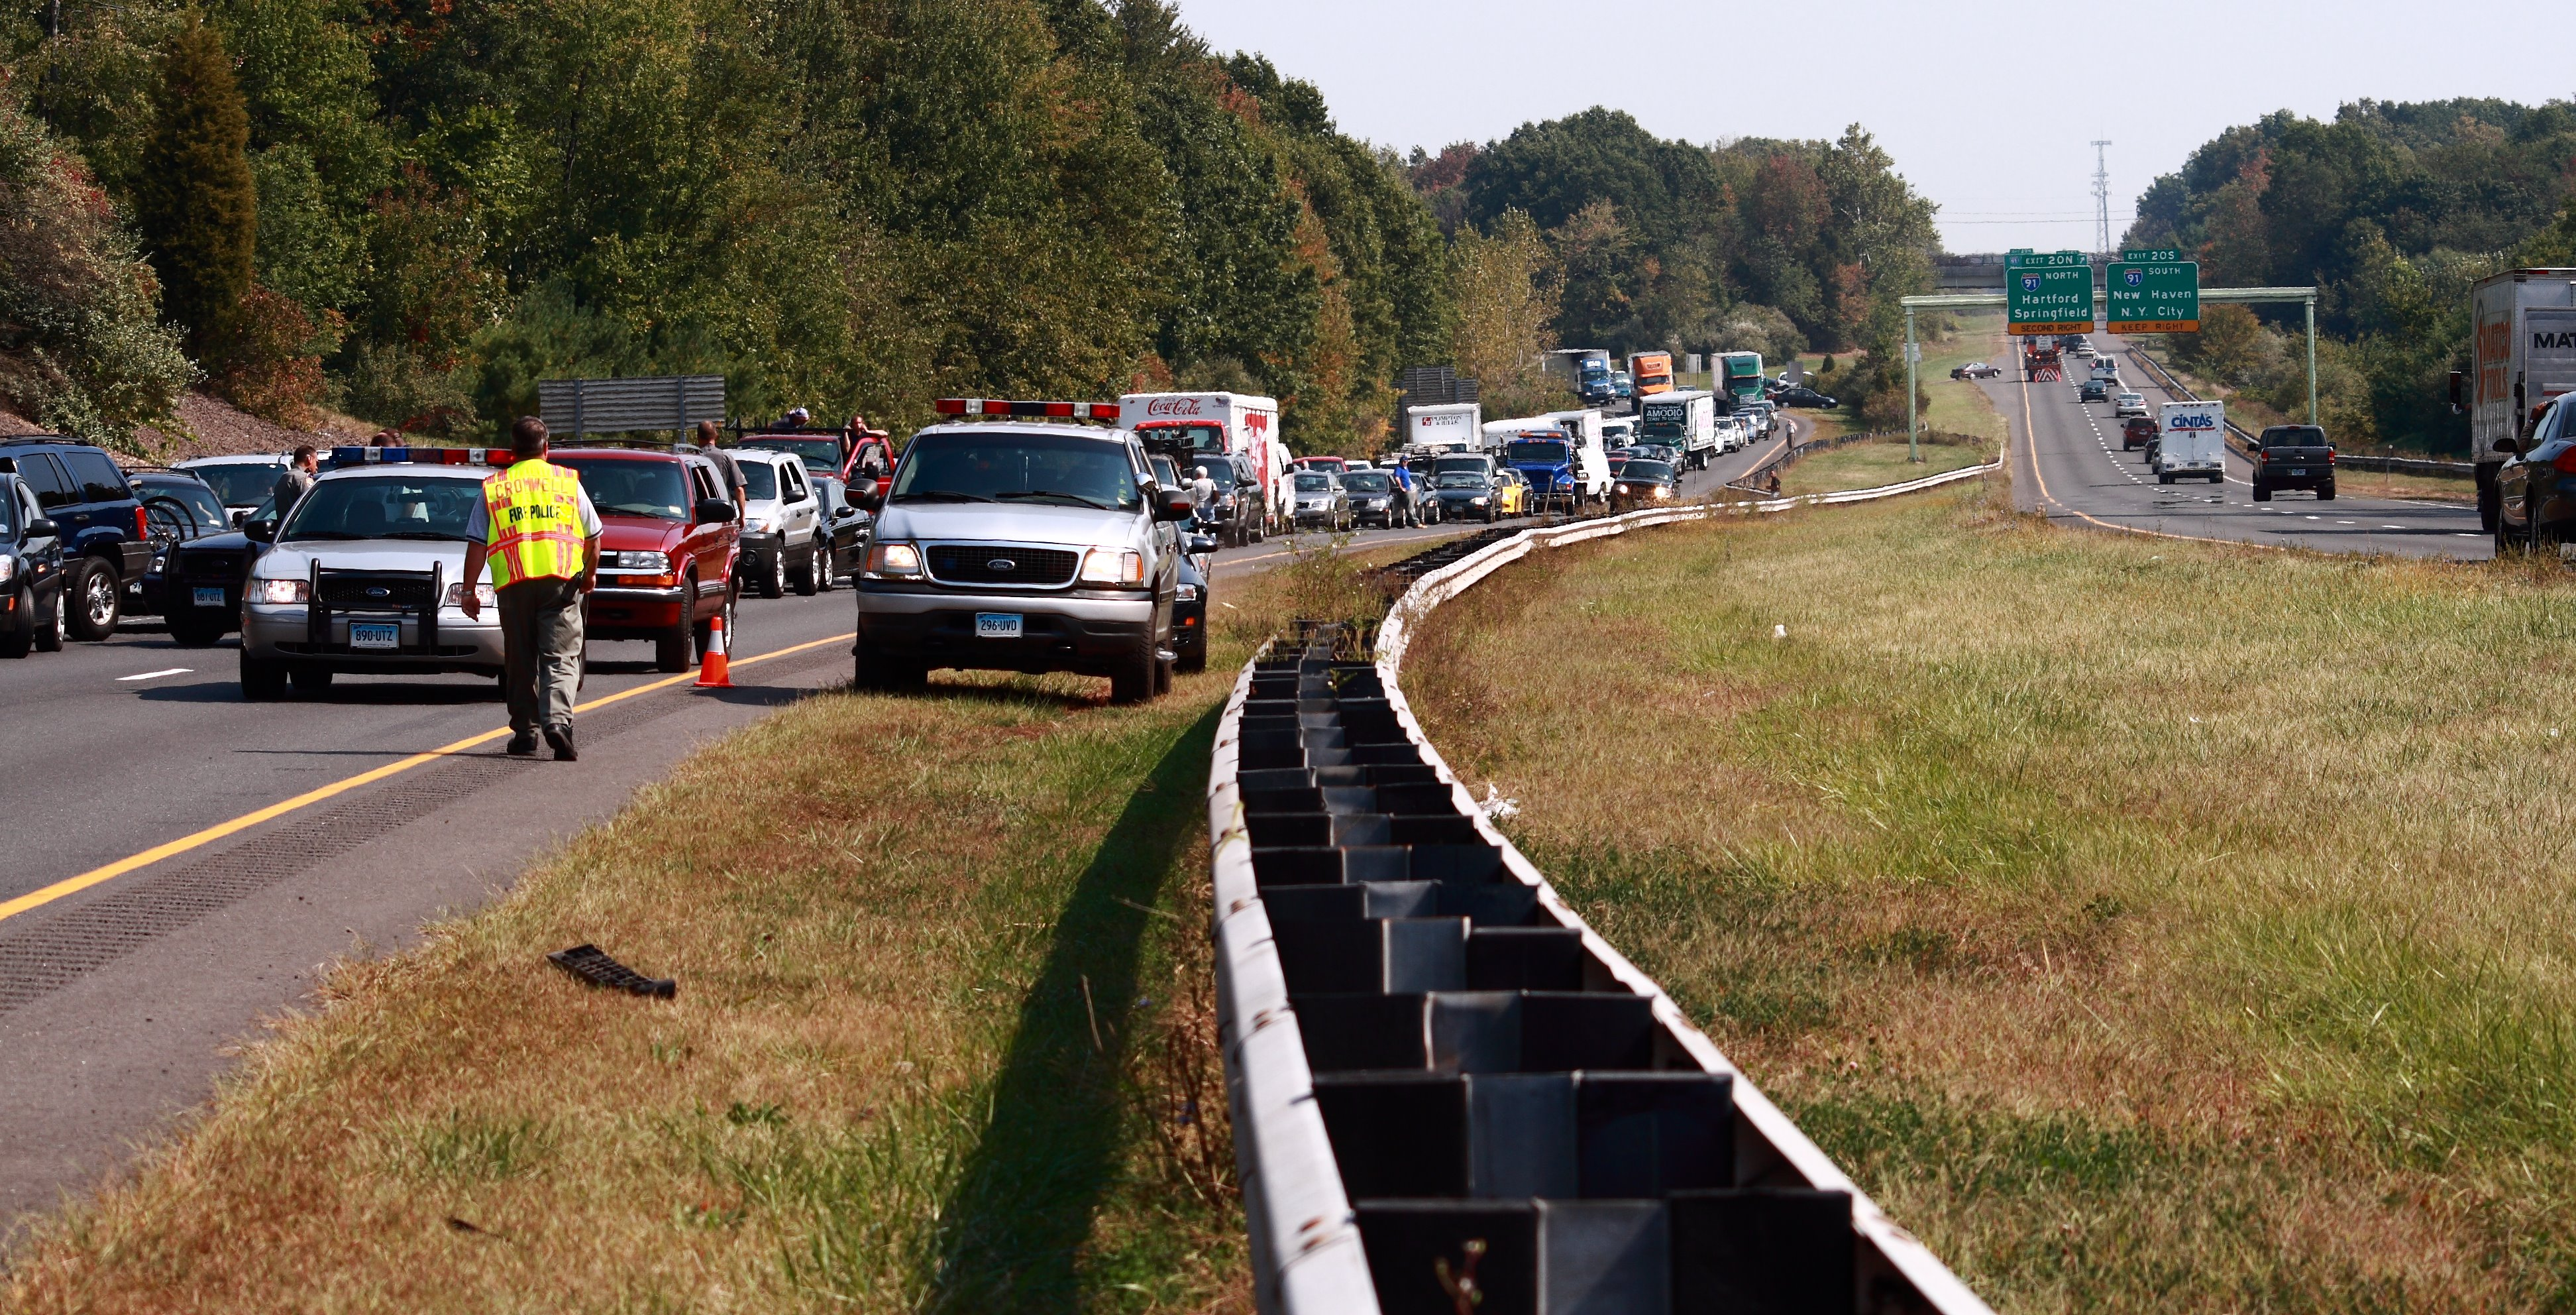 File:September 26, 2007 accident, highway 9, CT, traffic jpg